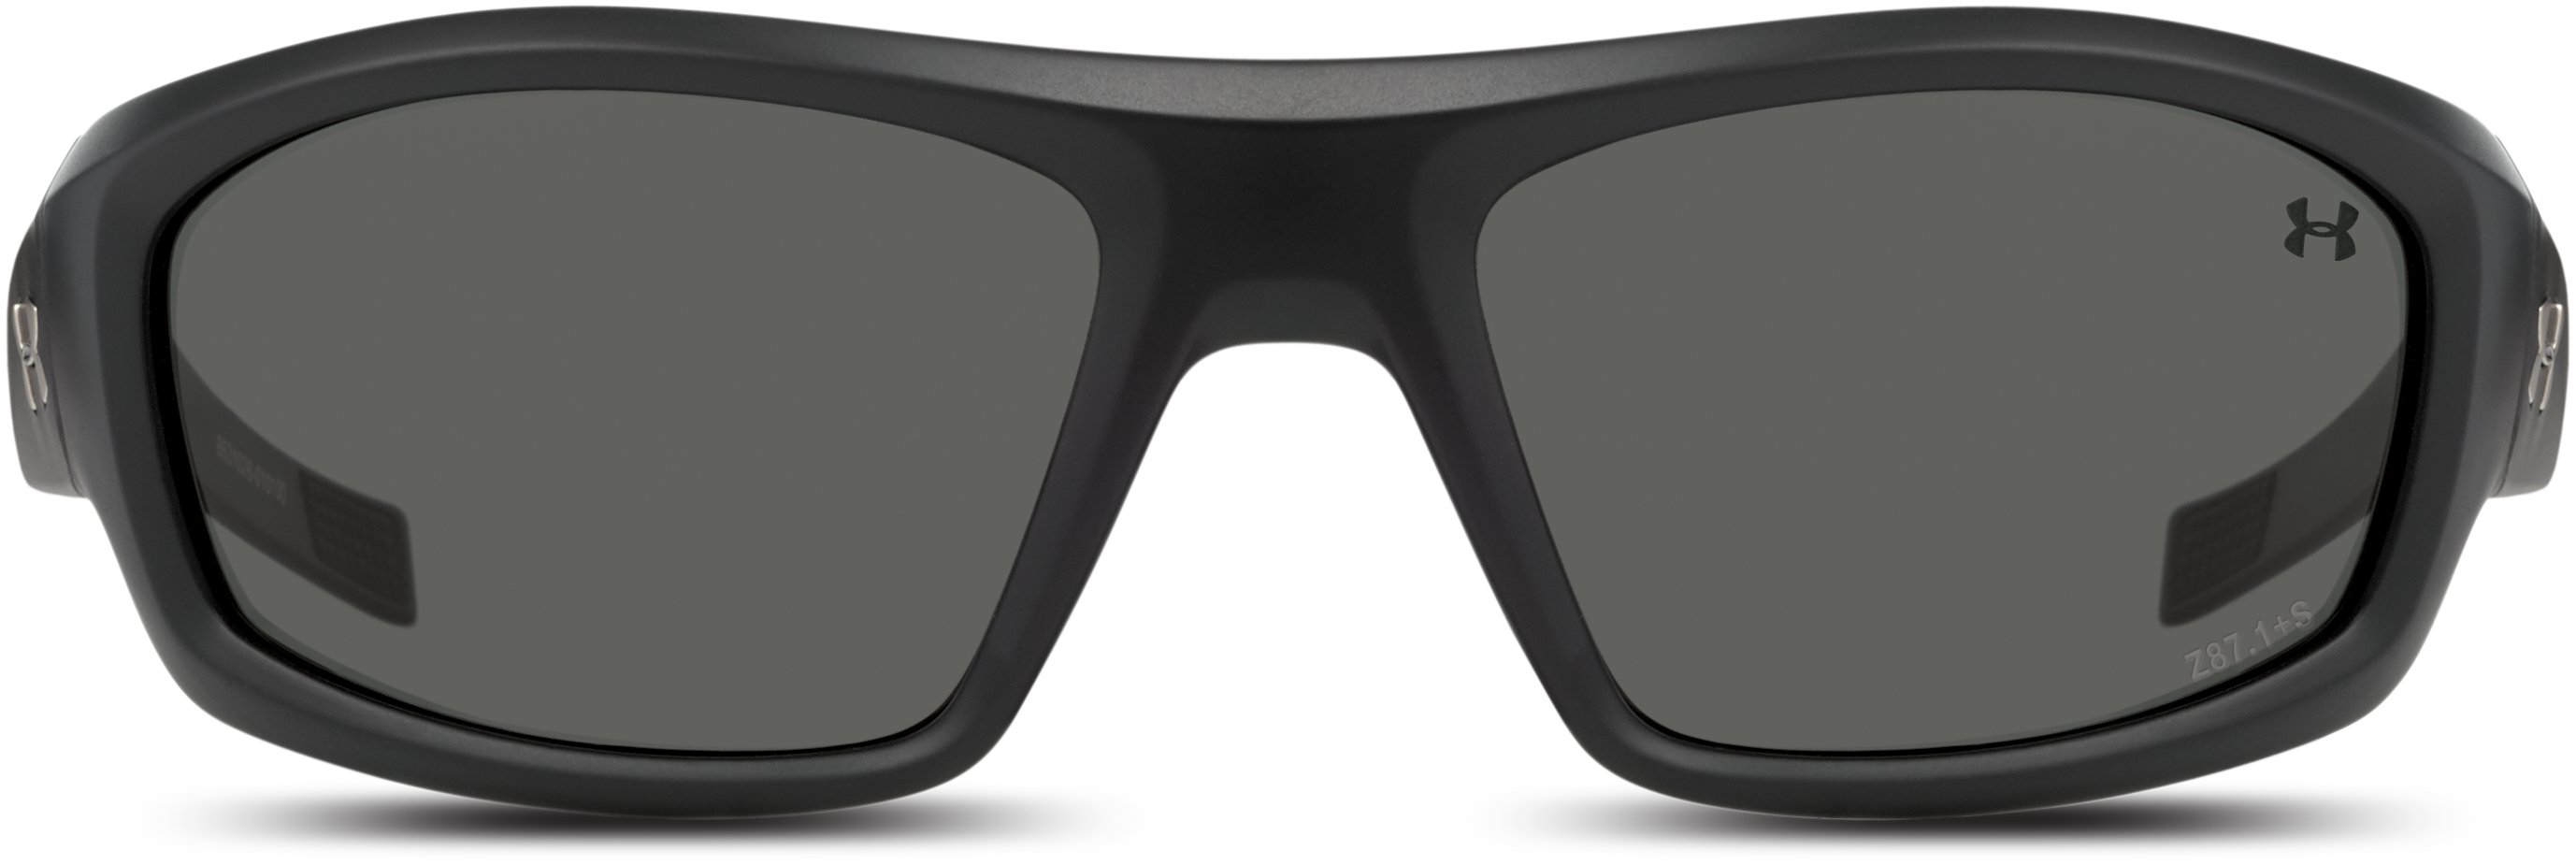 UA Power WWP Sunglasses, Satin Black